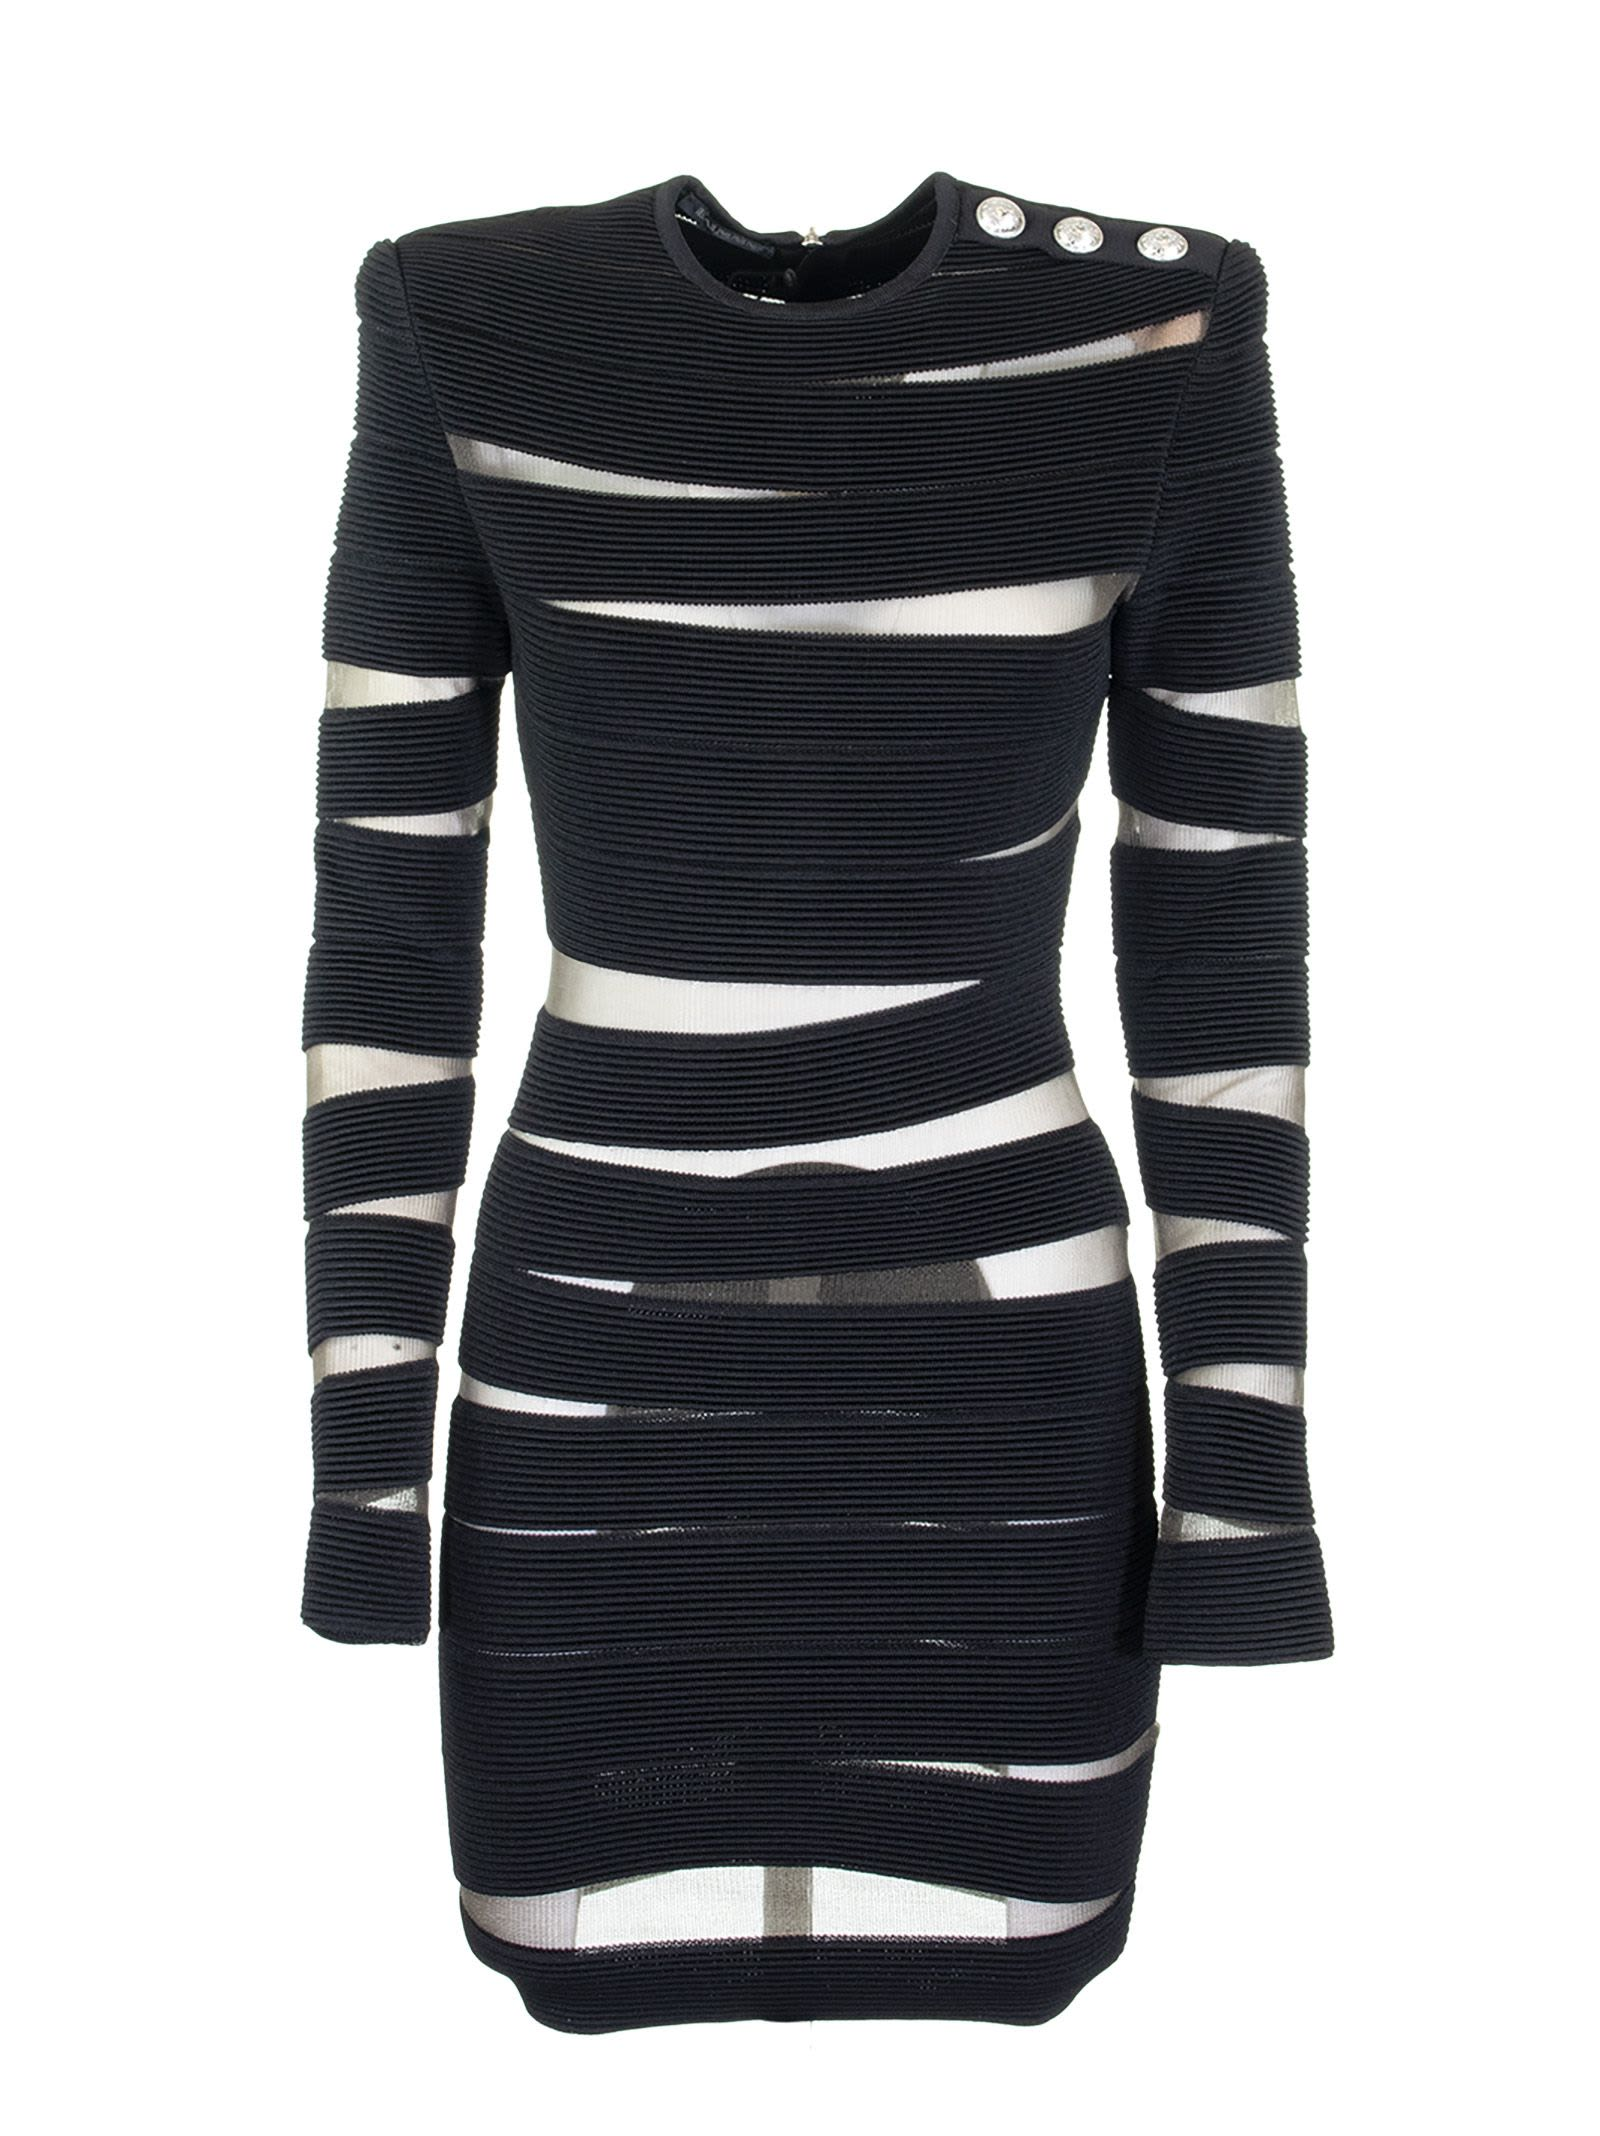 Balmain Dress Noir